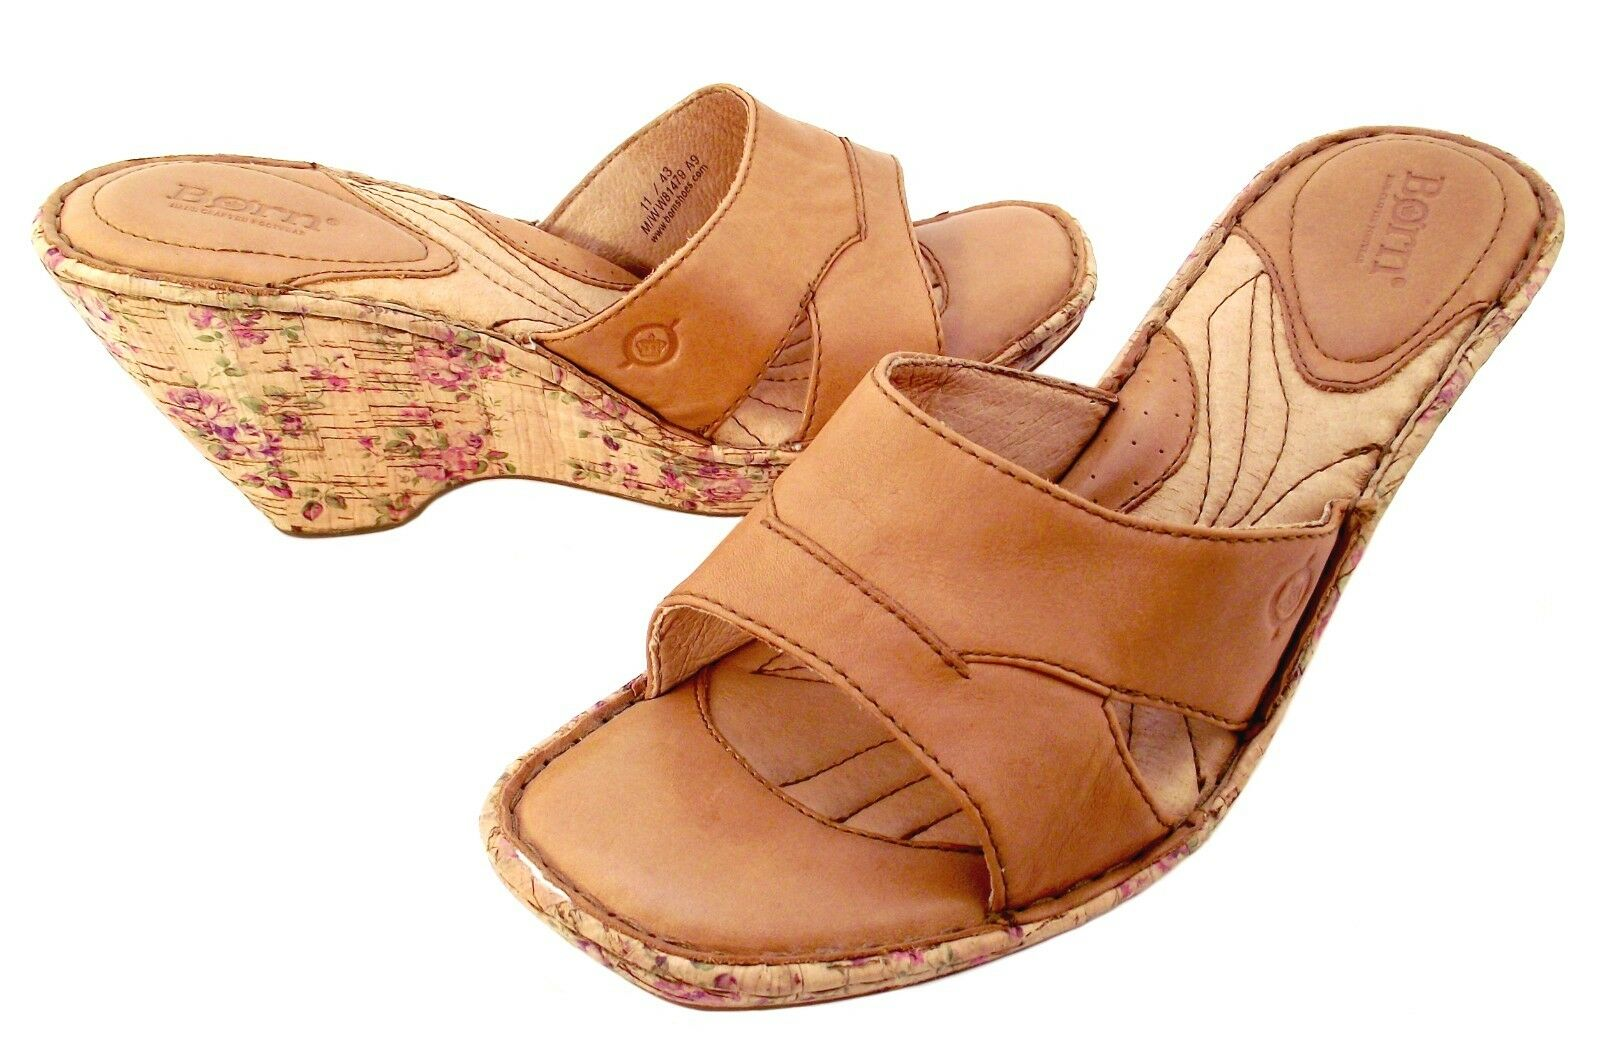 NWOB  BORN Saria Camel Tan Leather Wedge Slide-Floral Cork Wrapped Heel-Sz 11